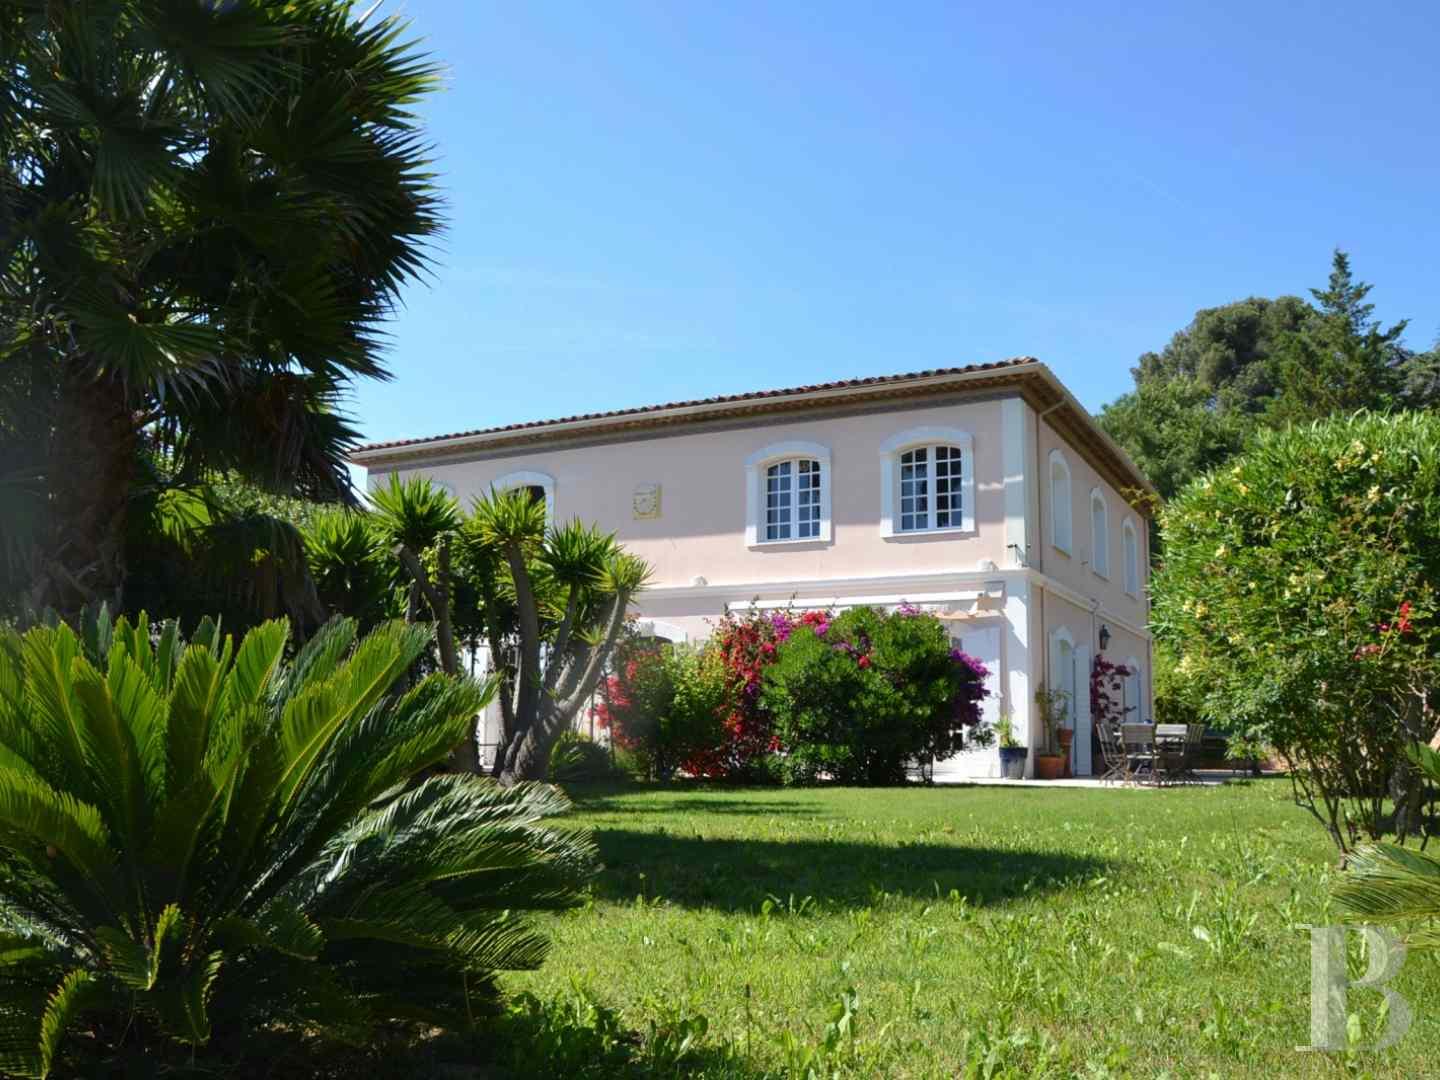 property for sale France provence cote dazur residences 20th - 2 zoom